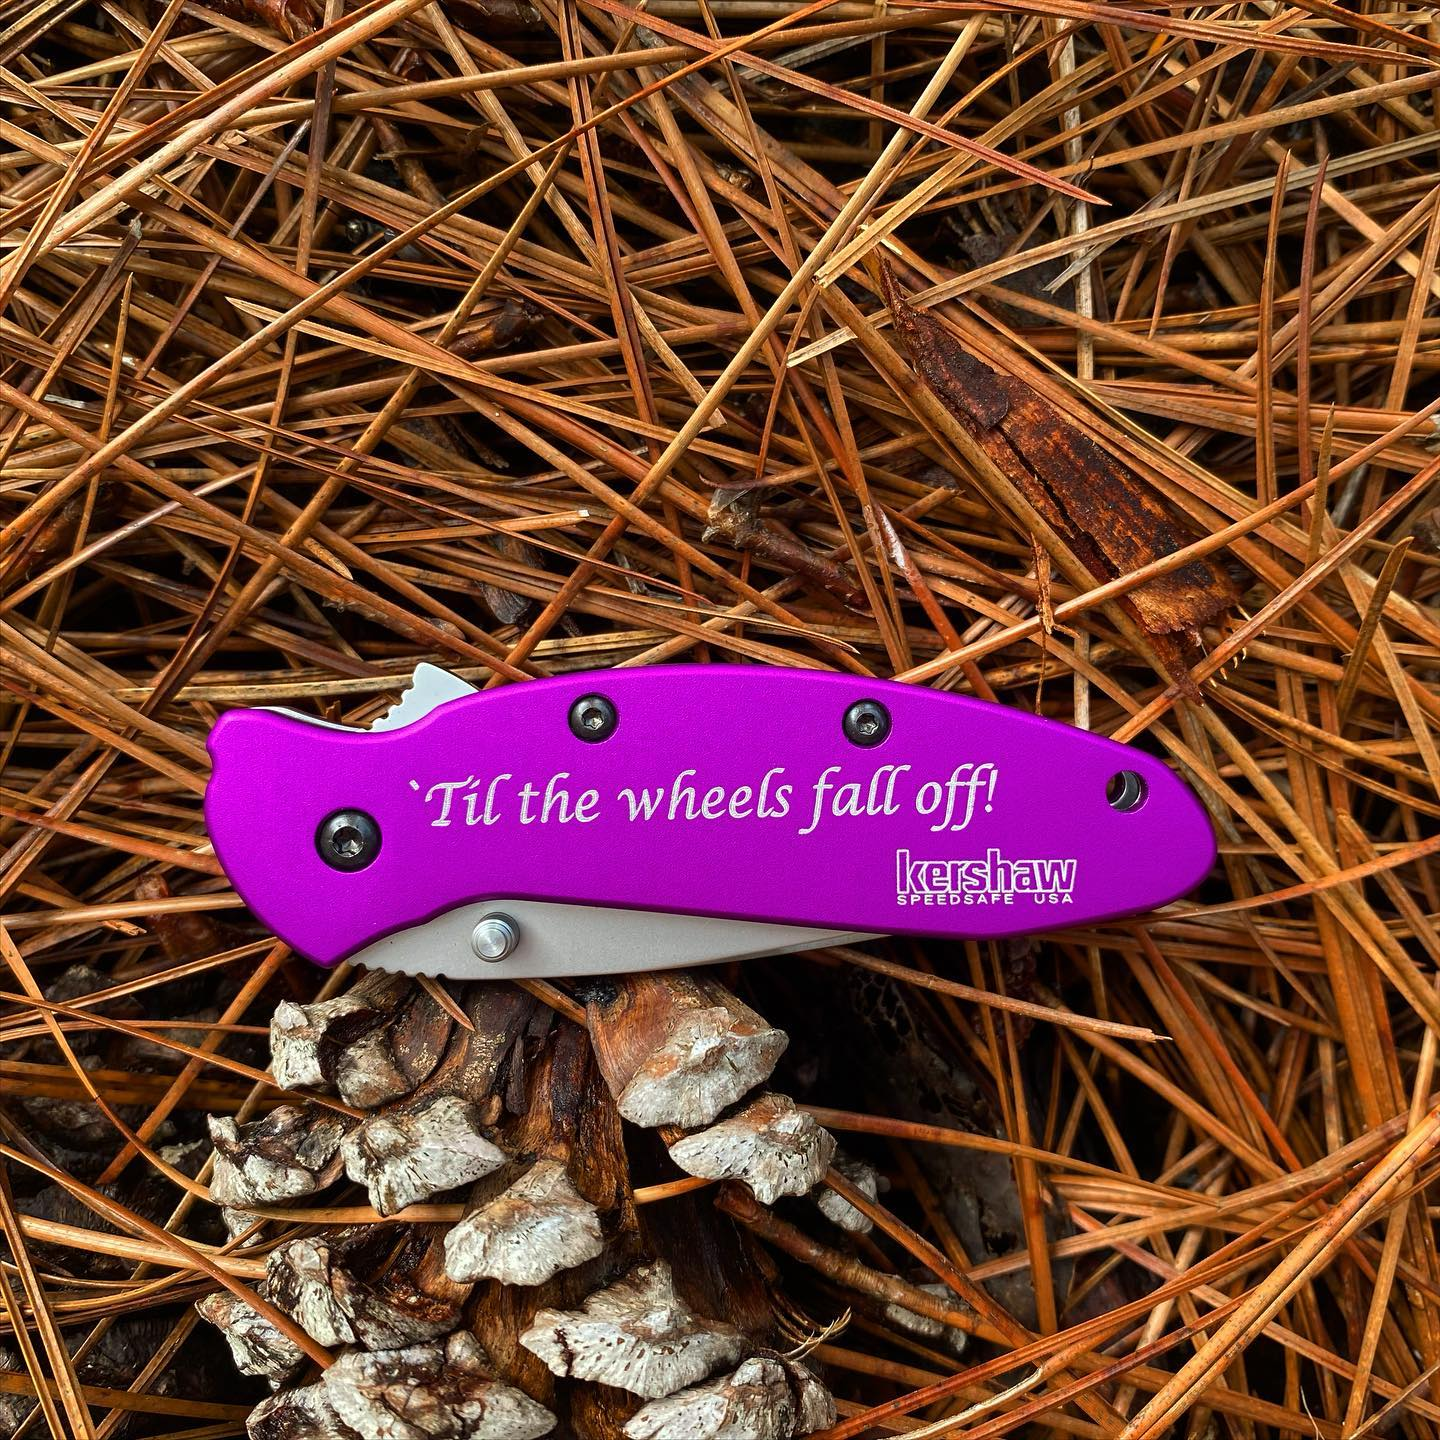 Kershaw Scallion 1620 Purple. Best things in life are used until the wheels fall off!! Enjoy life to the fullest. #1620Purple #bestthingsinlifearepurple #kershawscallion